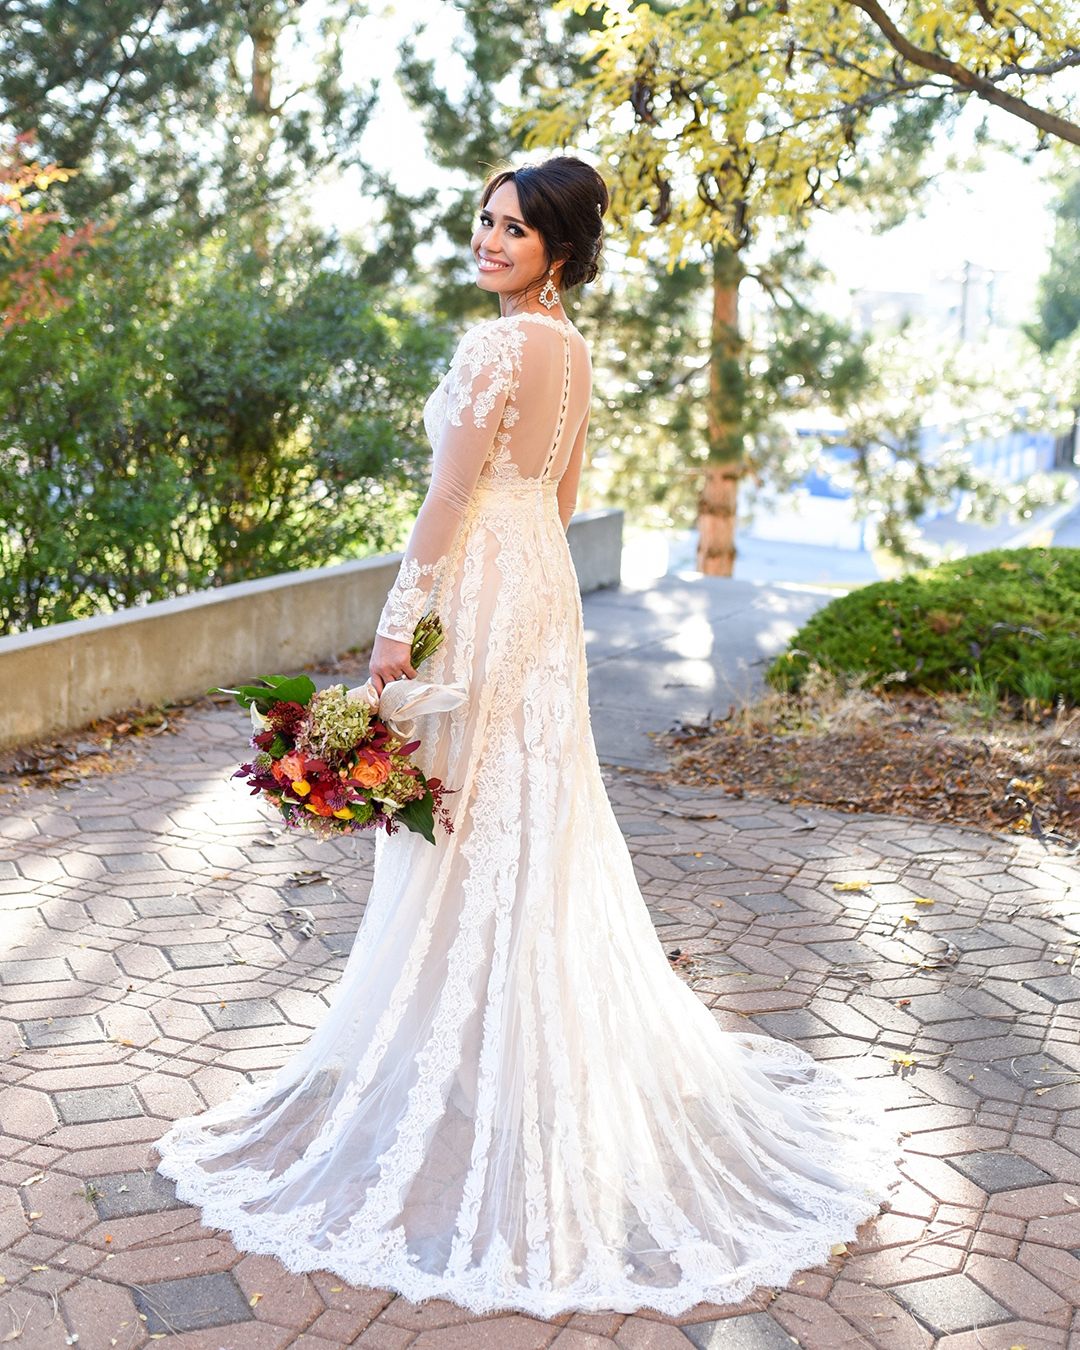 Bride in a long-sleeve lace gown showing off the back details of her dress in a garden setting.